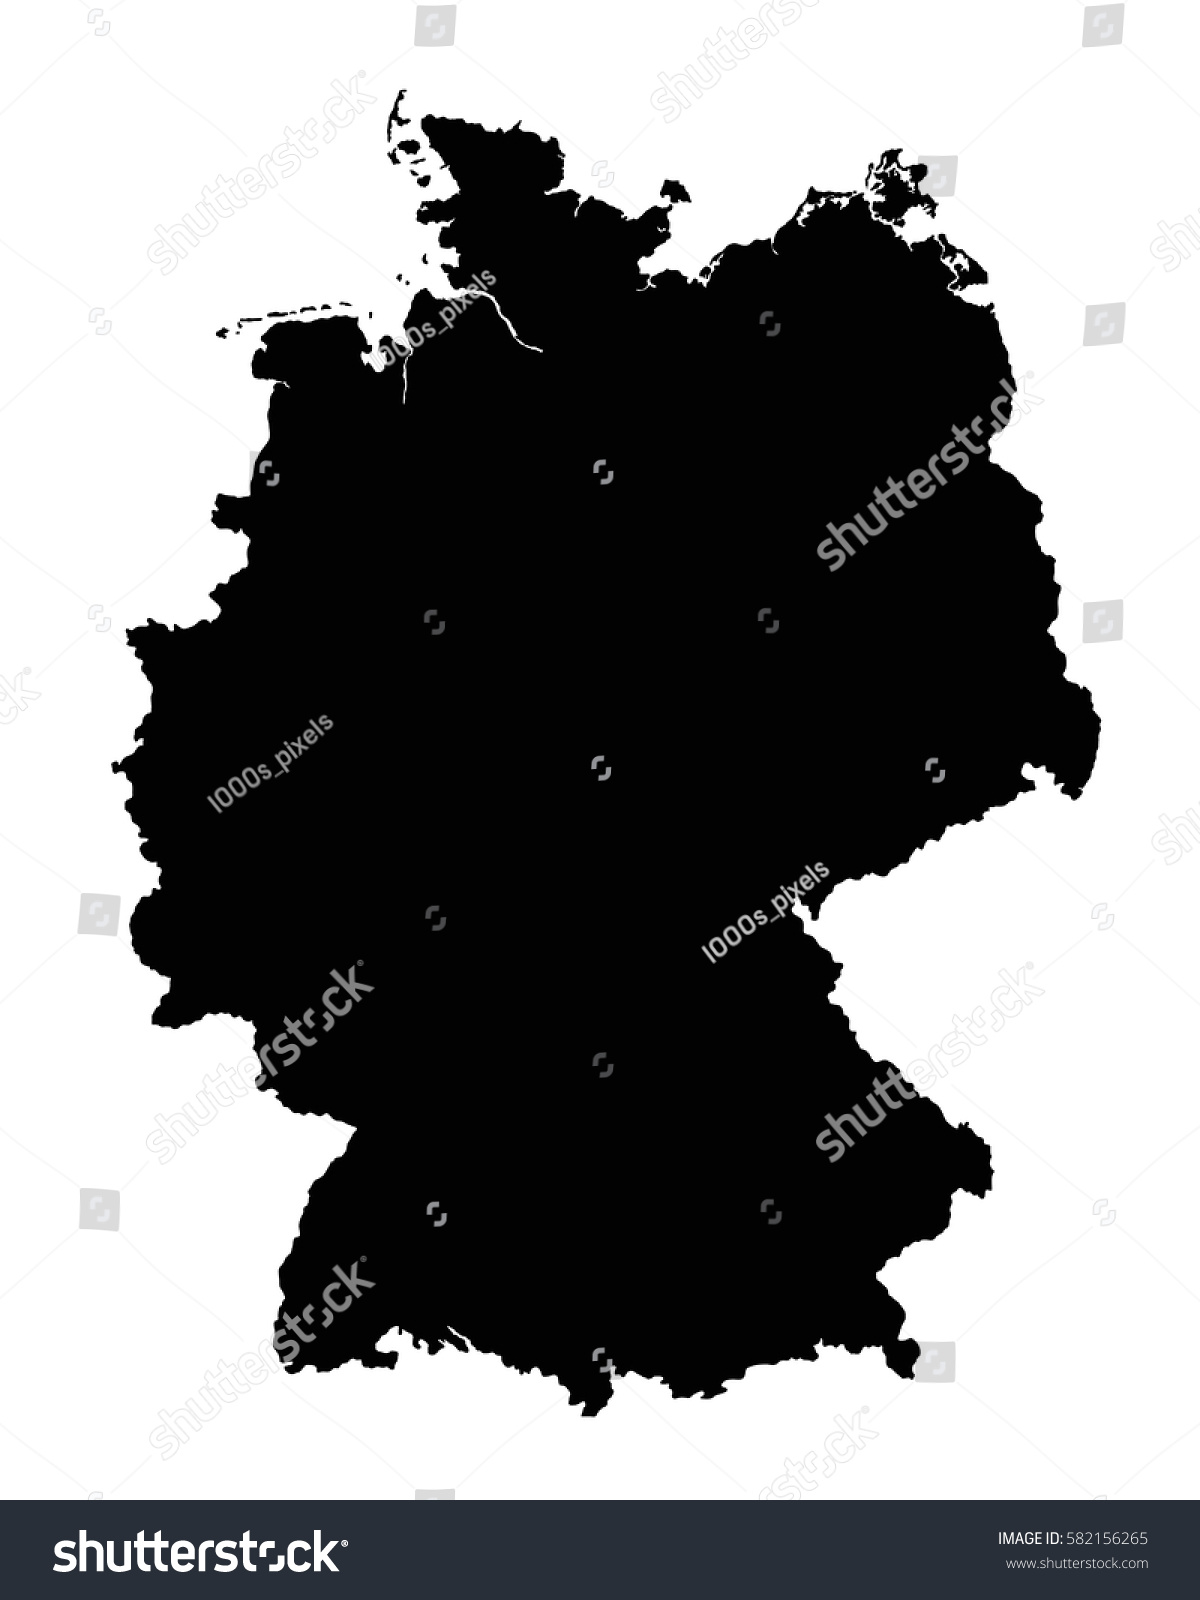 Germany Map Outline Vector Flag Stock Vector Shutterstock - Germany map outline